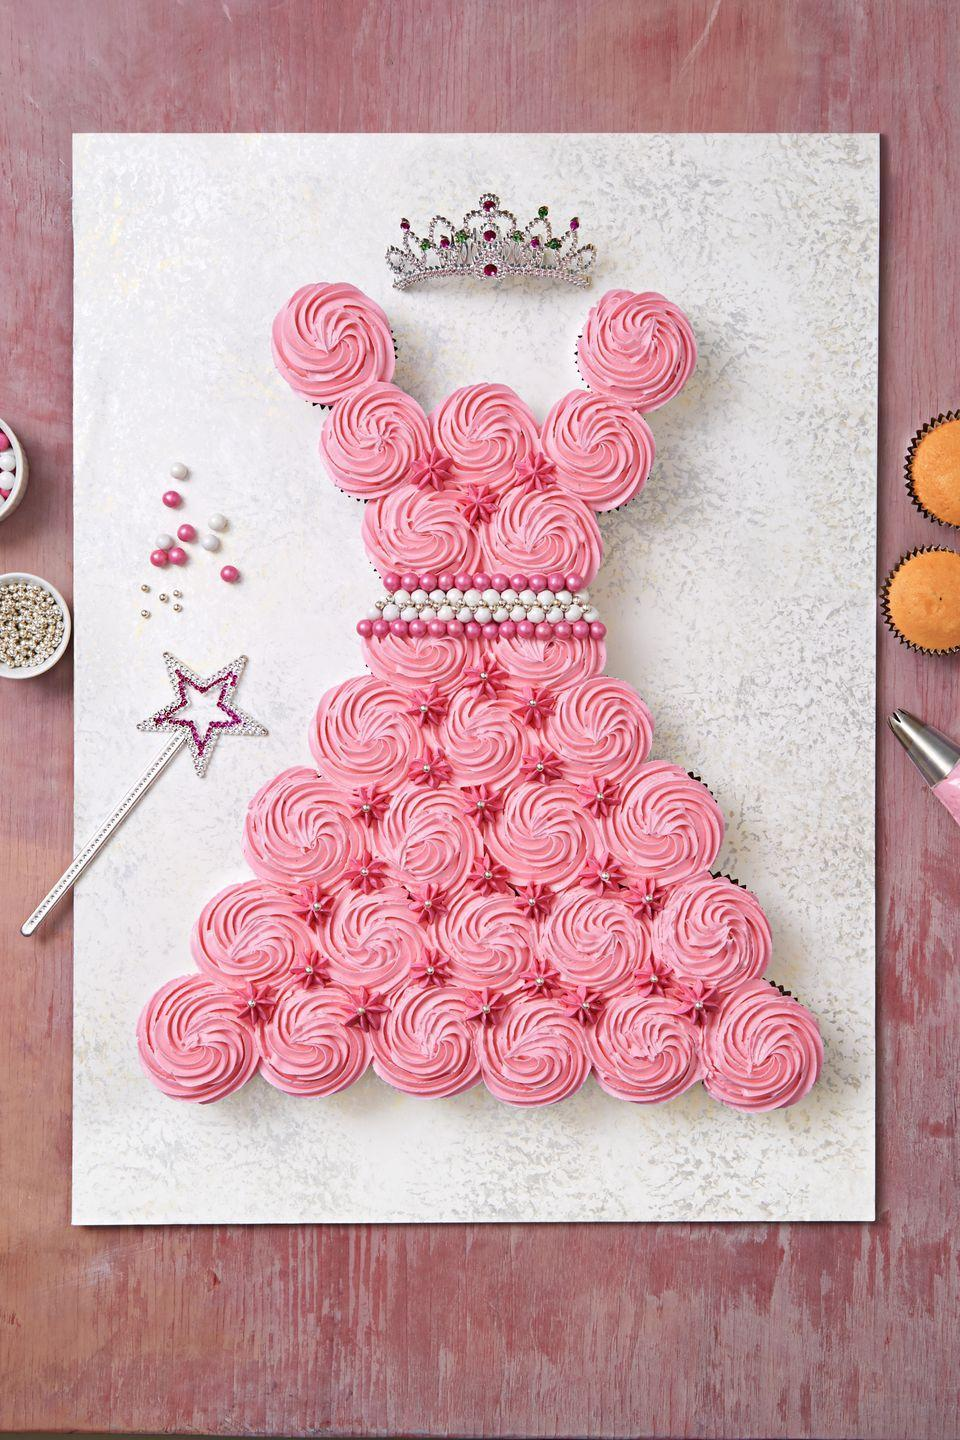 """<p>Decorate store-bought cupcakes with vanilla buttercream, arrange them in a dress pattern on cardboard, and add candy flowers to fill in the gaps.</p><p><a href=""""https://www.womansday.com/food-recipes/food-drinks/recipes/a12442/vanilla-buttercream-recipe-wdy1214/"""" rel=""""nofollow noopener"""" target=""""_blank"""" data-ylk=""""slk:Get the Vanilla Buttercream recipe."""" class=""""link rapid-noclick-resp""""><strong><em>Get the Vanilla Buttercream recipe.</em></strong></a></p>"""